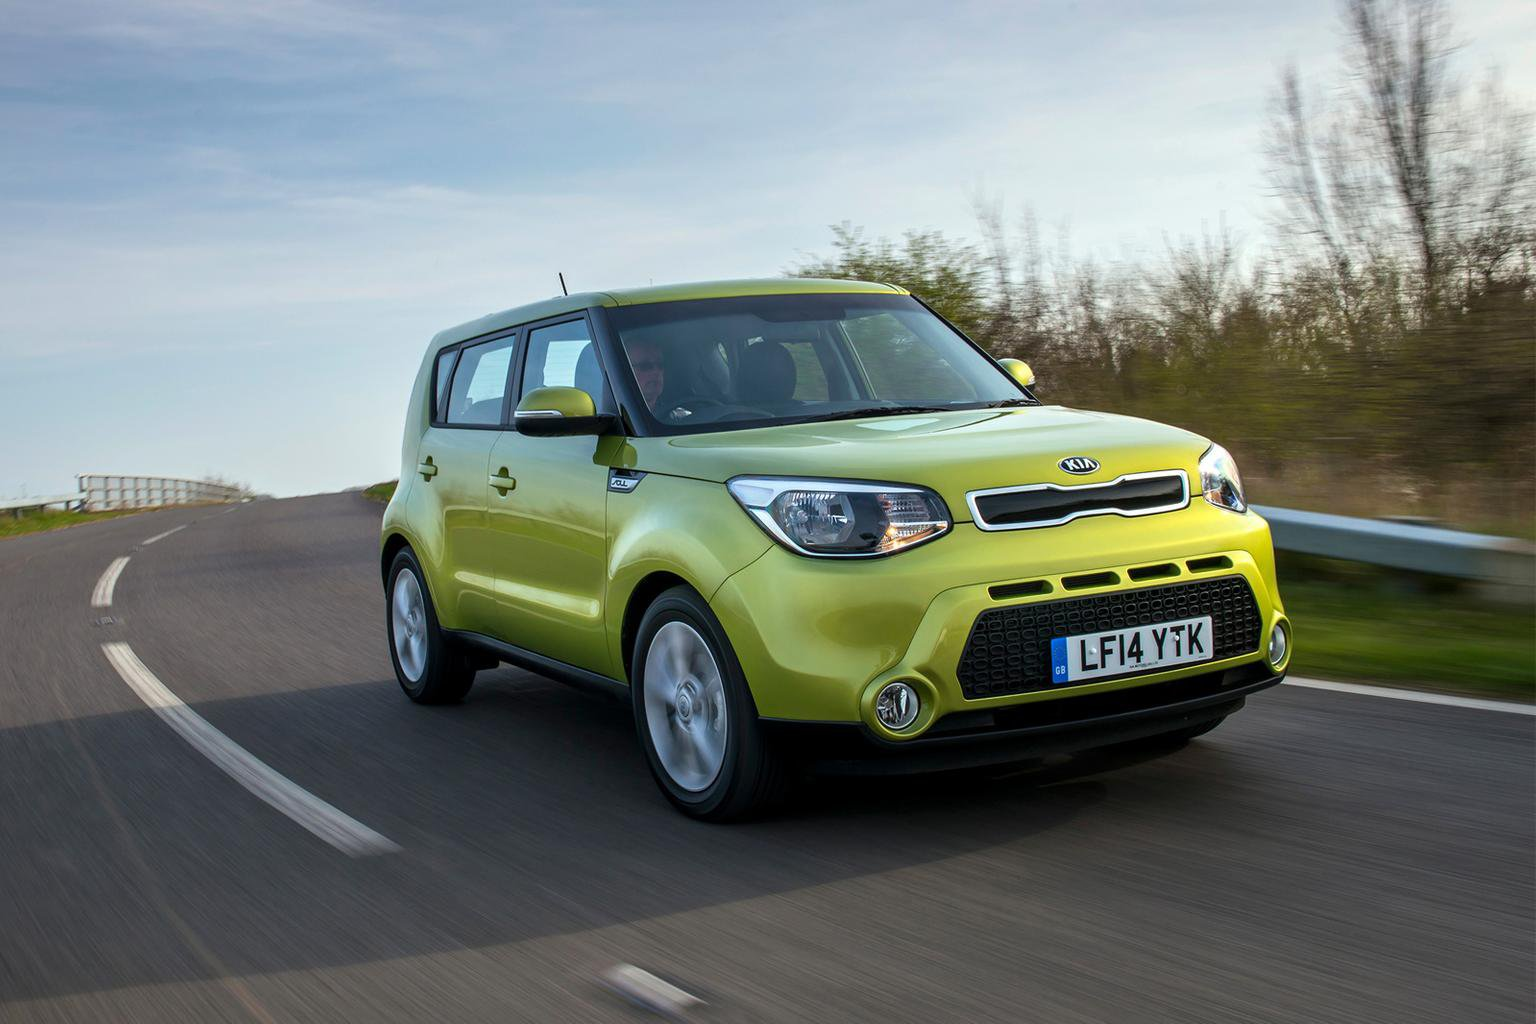 2014 Kia Soul prices start from 12,600